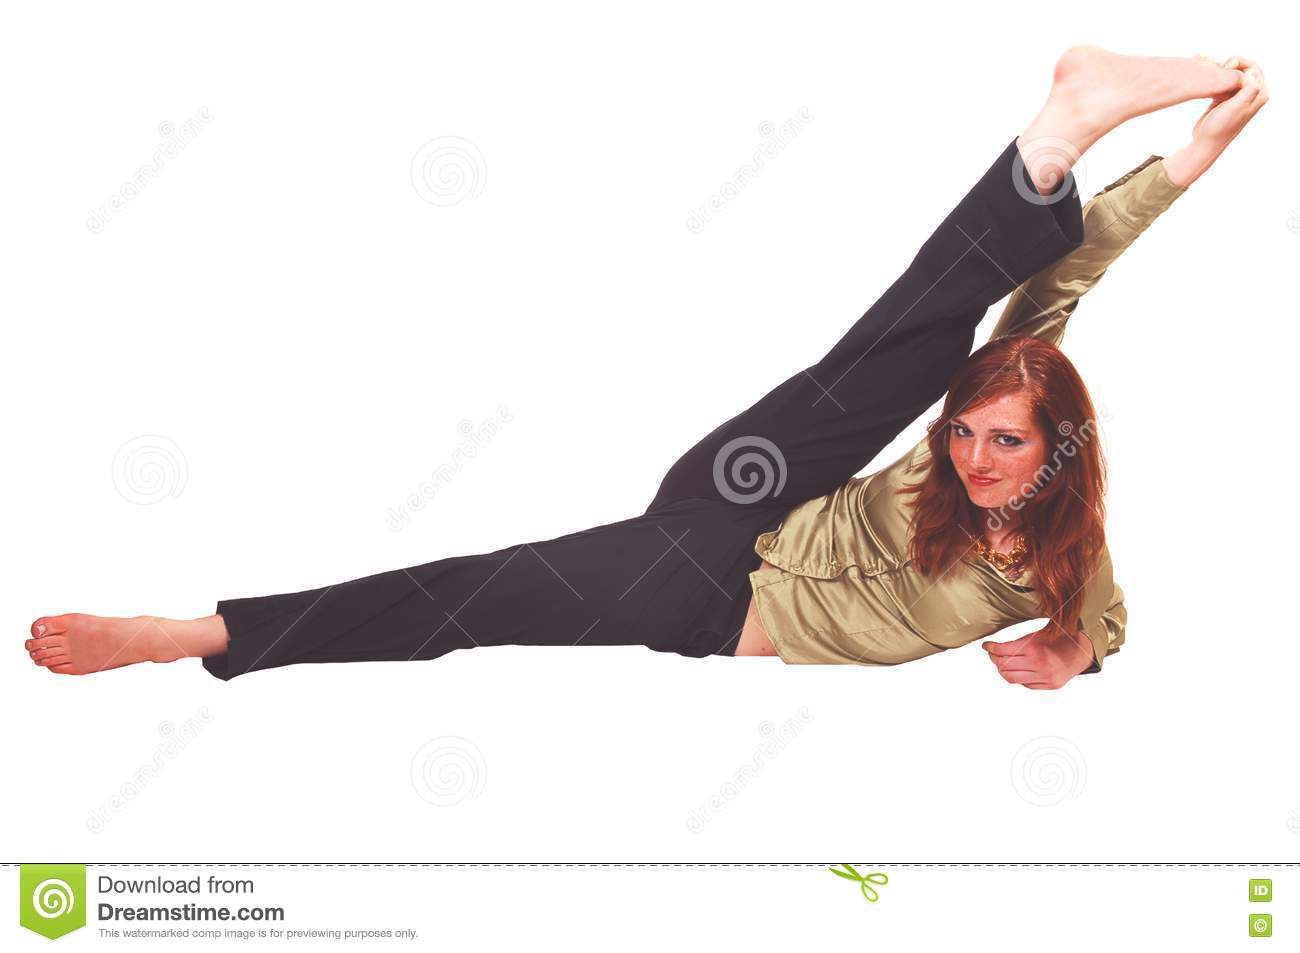 Acrobatic girls images 81